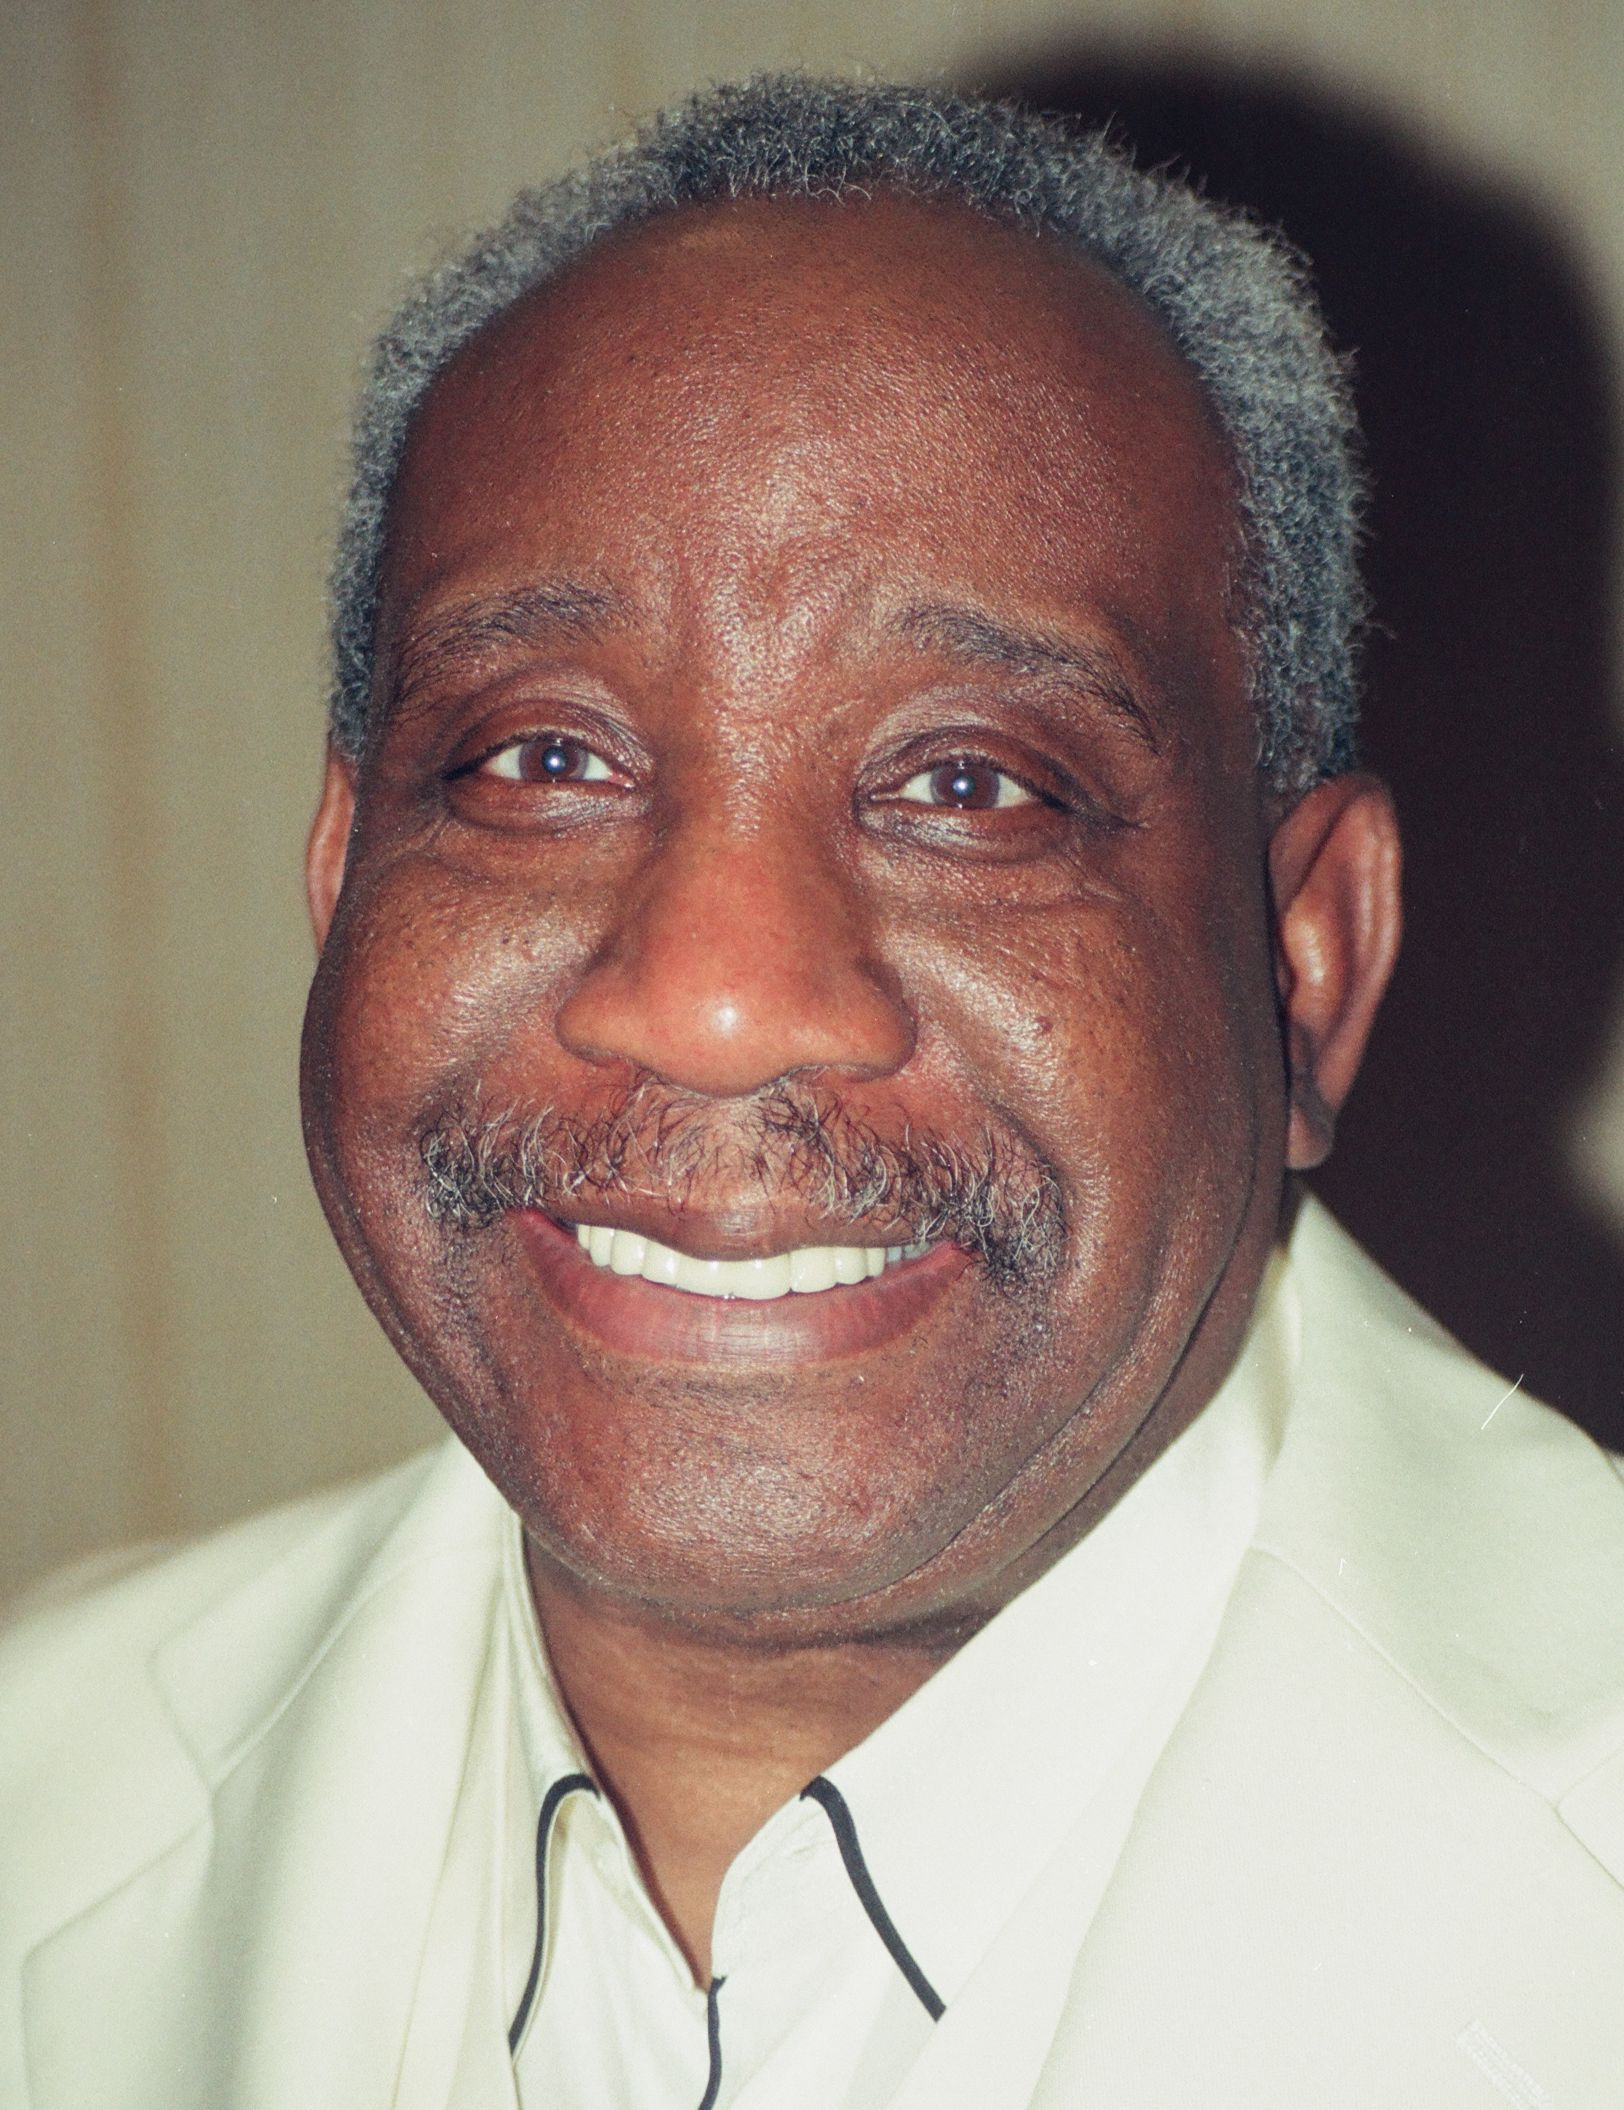 The 79-year old son of father (?) and mother(?) Jerry Butler in 2019 photo. Jerry Butler earned a  million dollar salary - leaving the net worth at 2 million in 2019